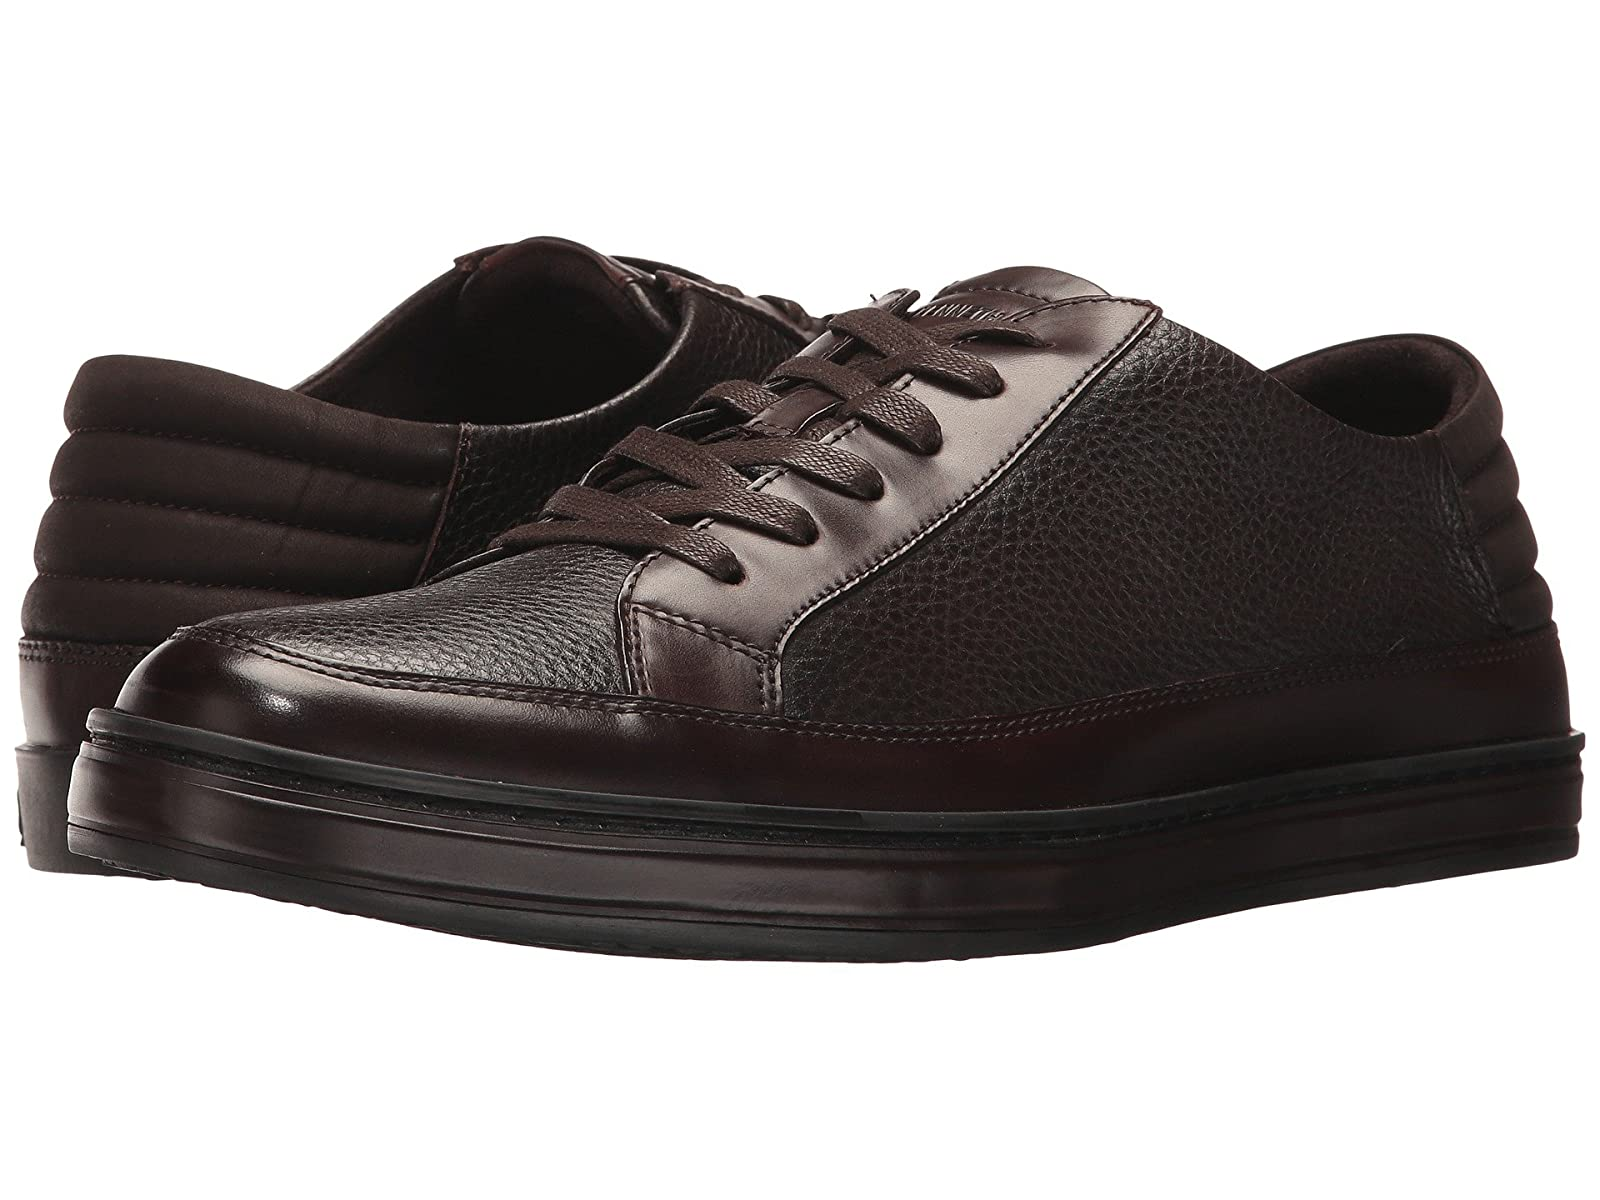 Kenneth Cole New York Brand StandCheap and distinctive eye-catching shoes